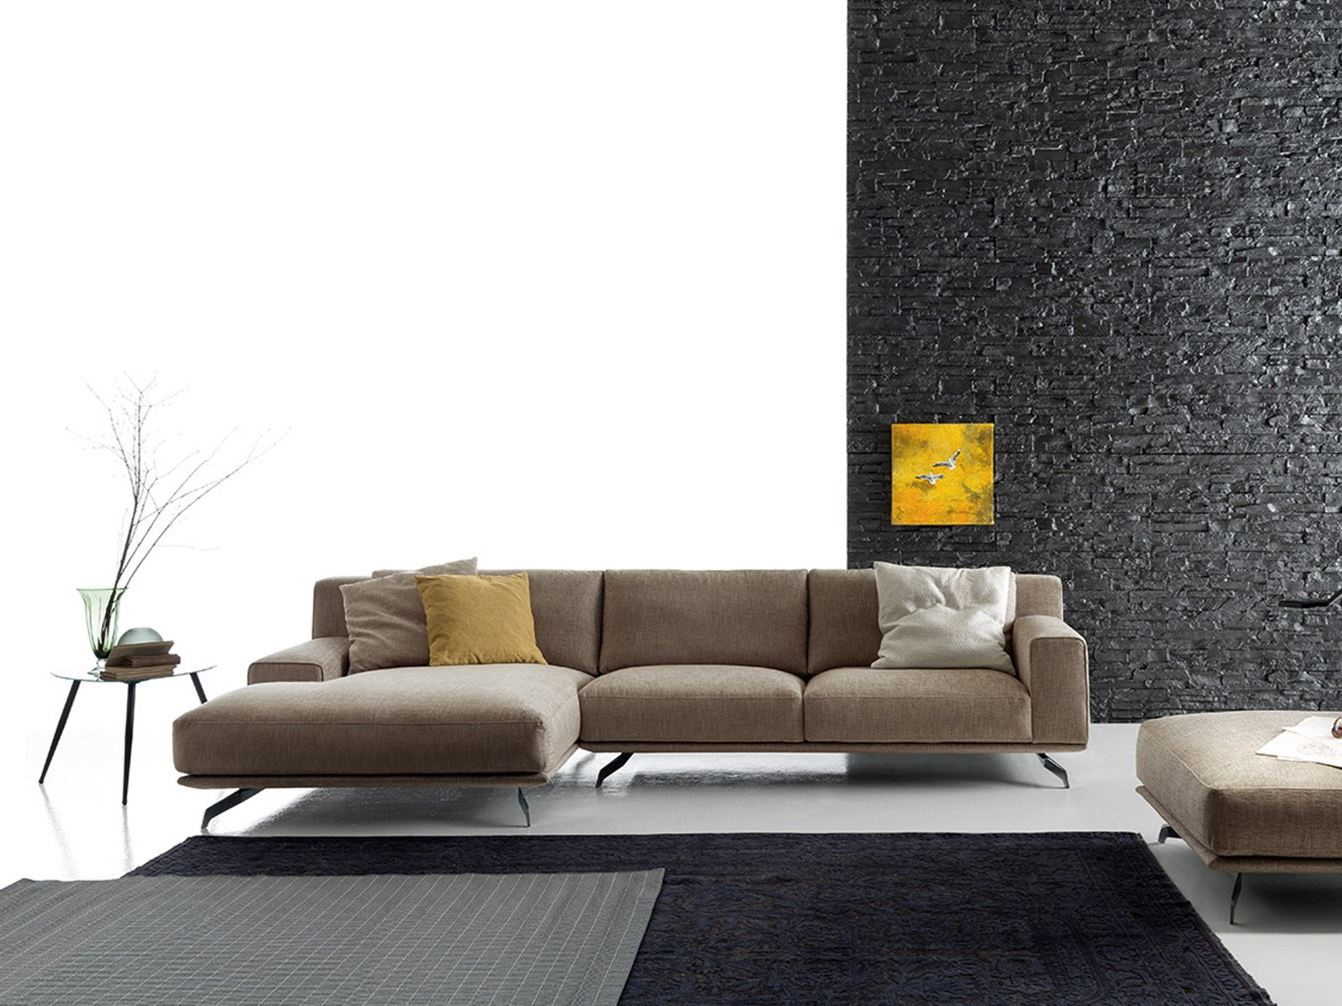 Corner sectional fabric sofa DALTON by Ditre Italia design Stefano Spessotto, Lorella Agnoletto